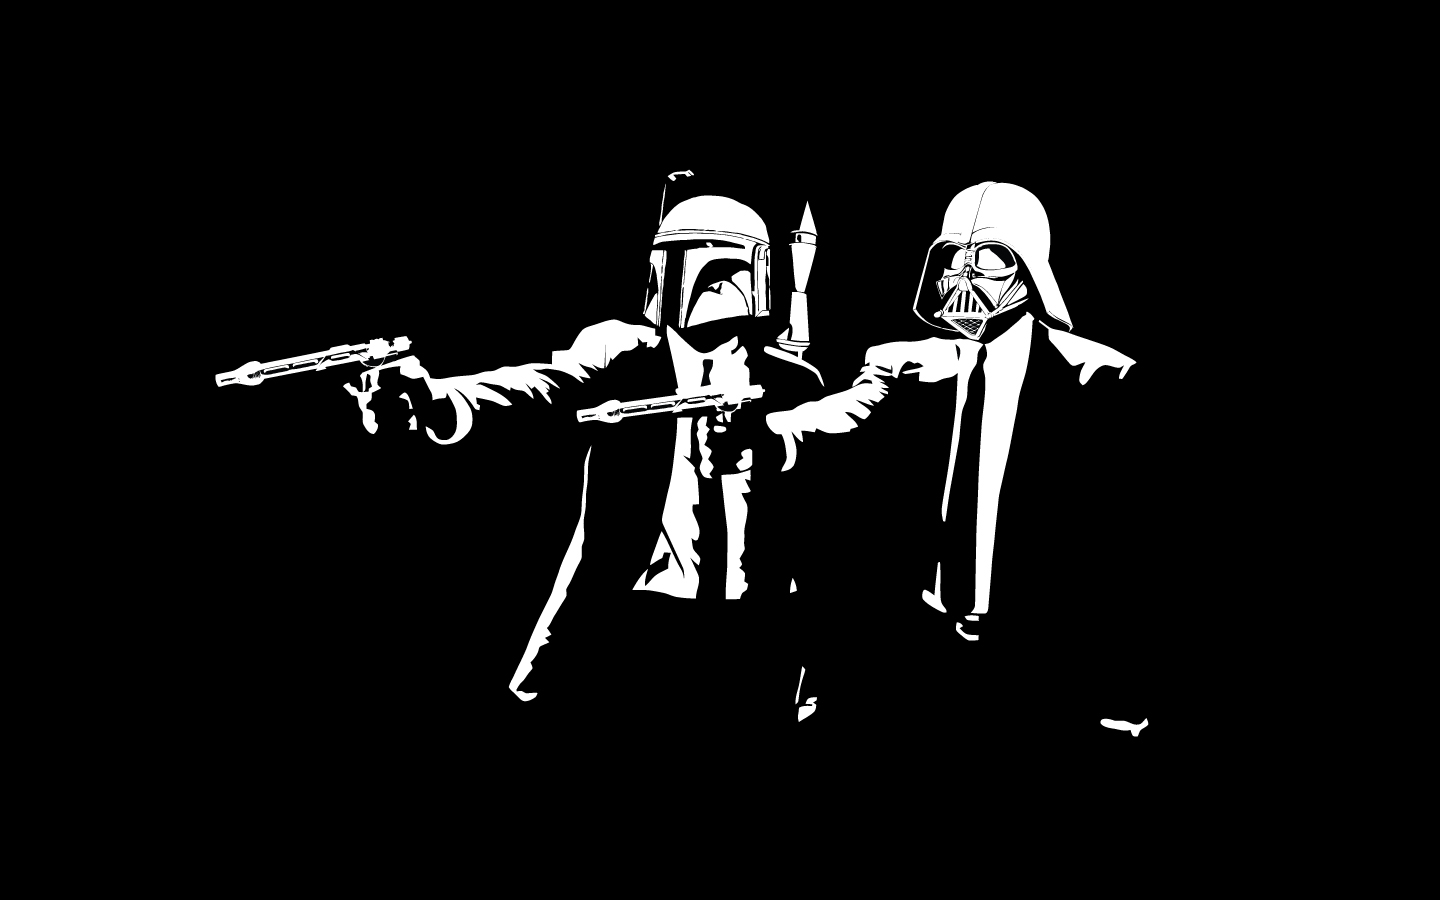 Star wars funny wallpaper pulp fiction parody